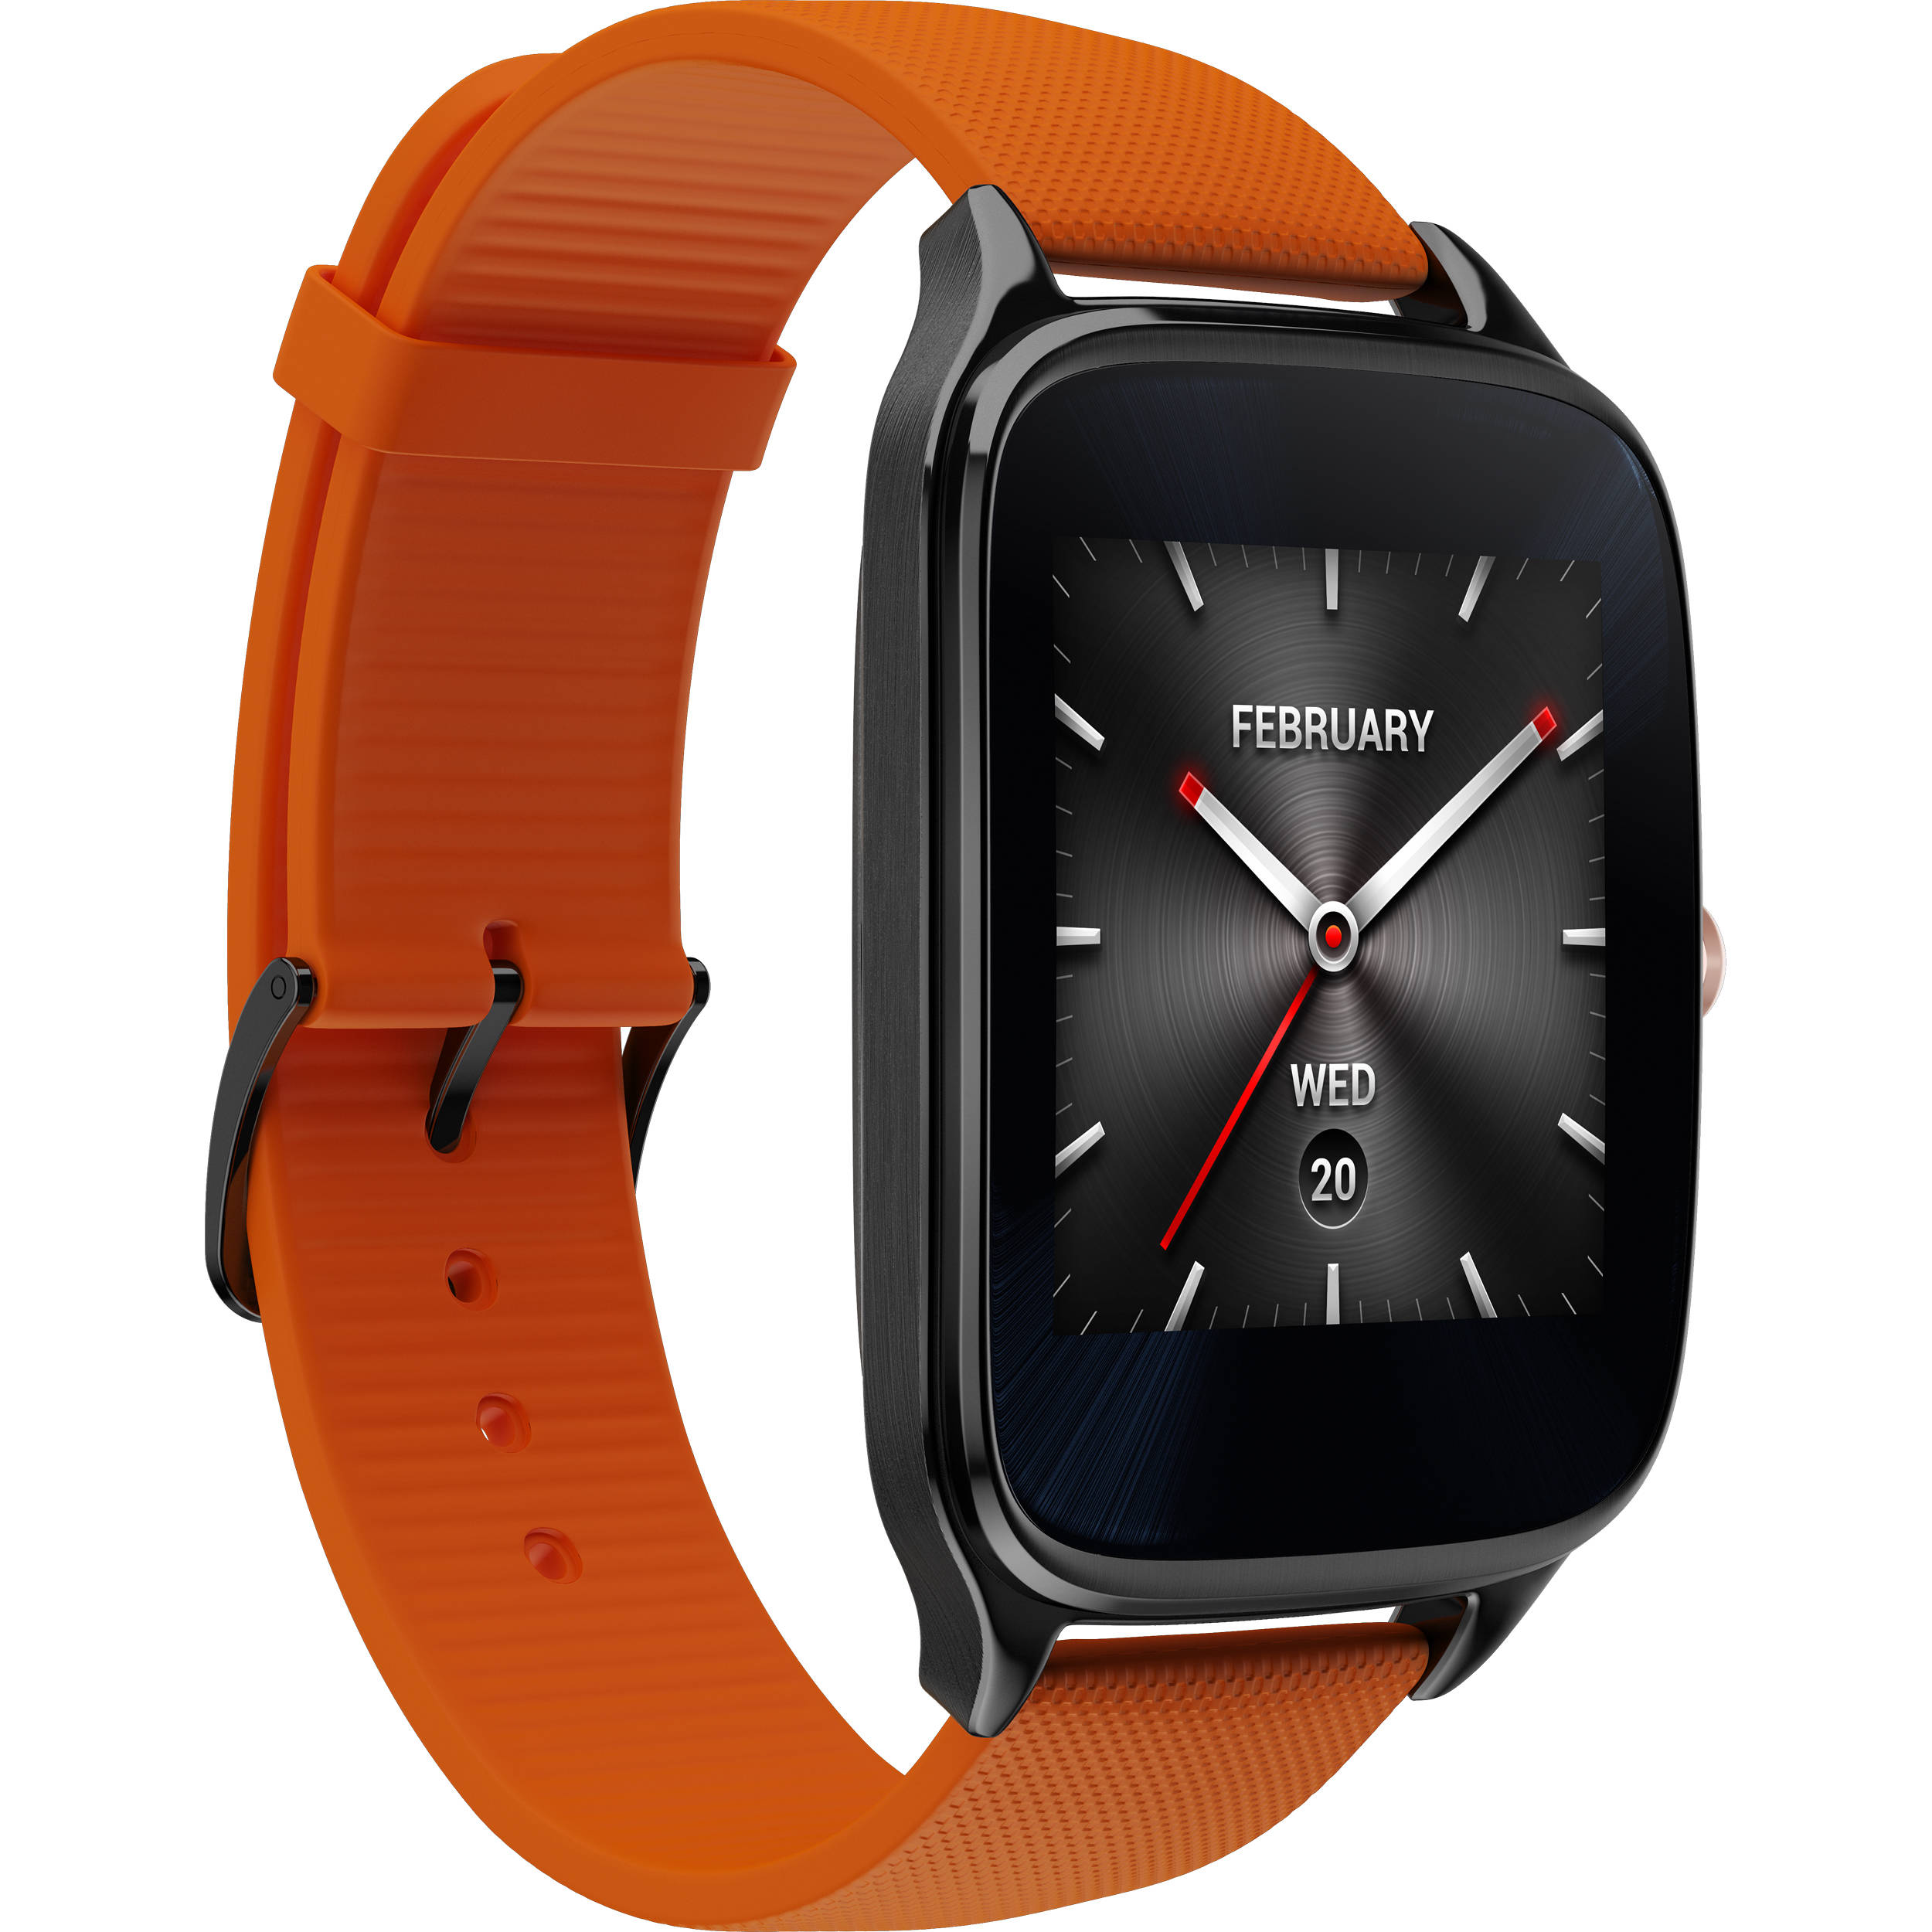 ASUS ZenWatch 2 Android Wear Smartwatch (Orange Leather Strap)